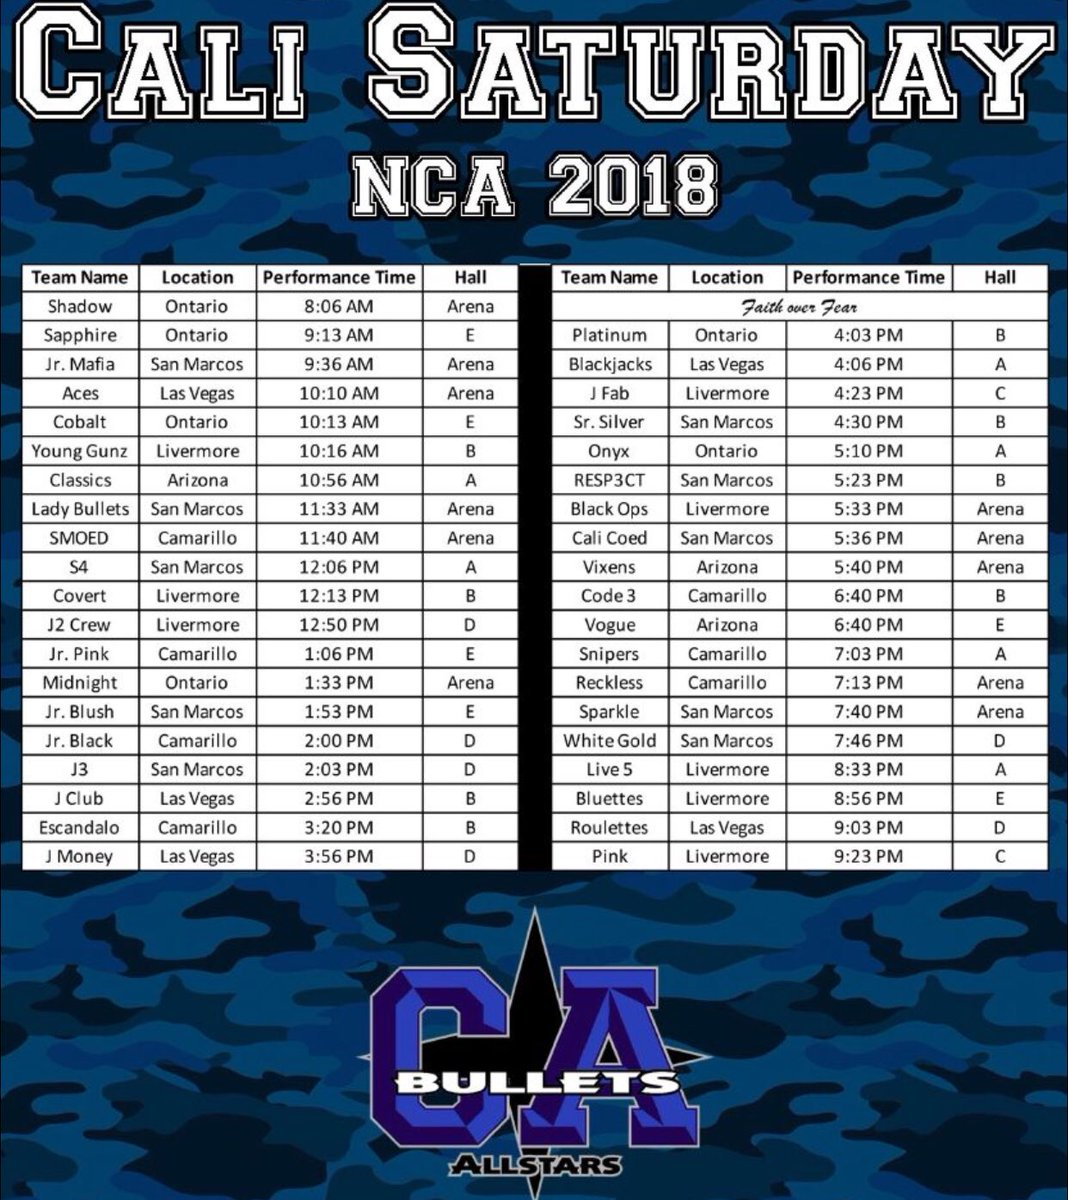 RT @TheCaliAllStars: Suns up! Day 1 has begun! Game time! 💙👊 #CAfamily #allglory⬆️ https://t.co/MR7Vvo1yQK